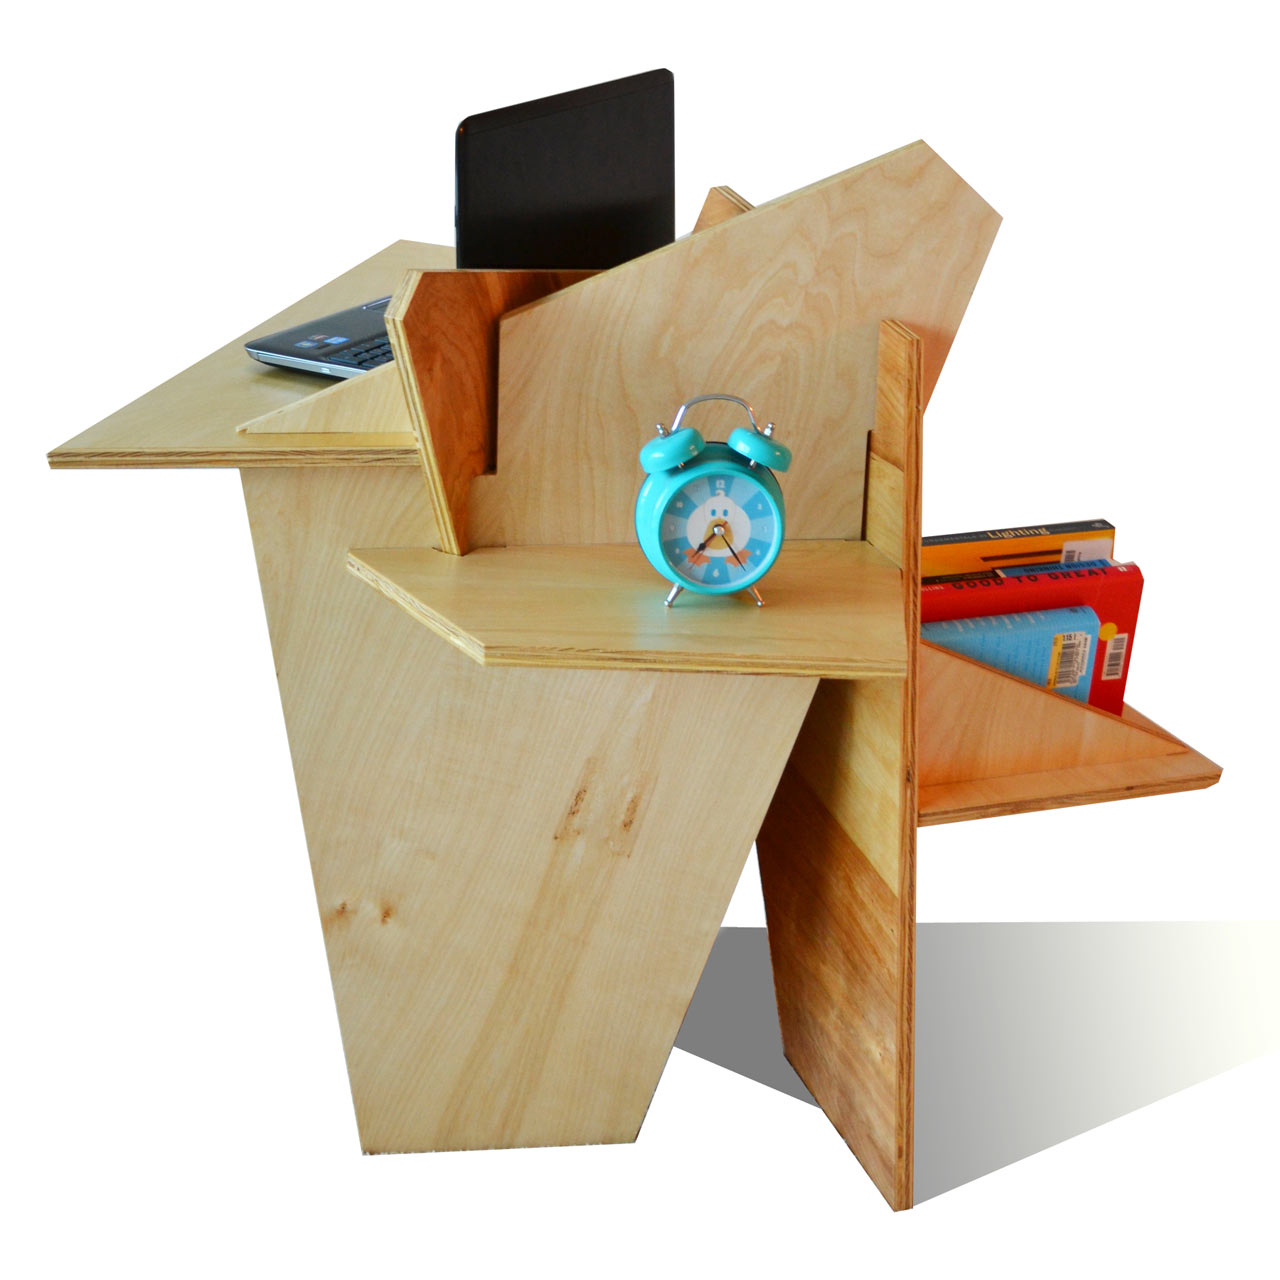 adesignaward-Origami-Rose-Multifunctional-Table-Chan